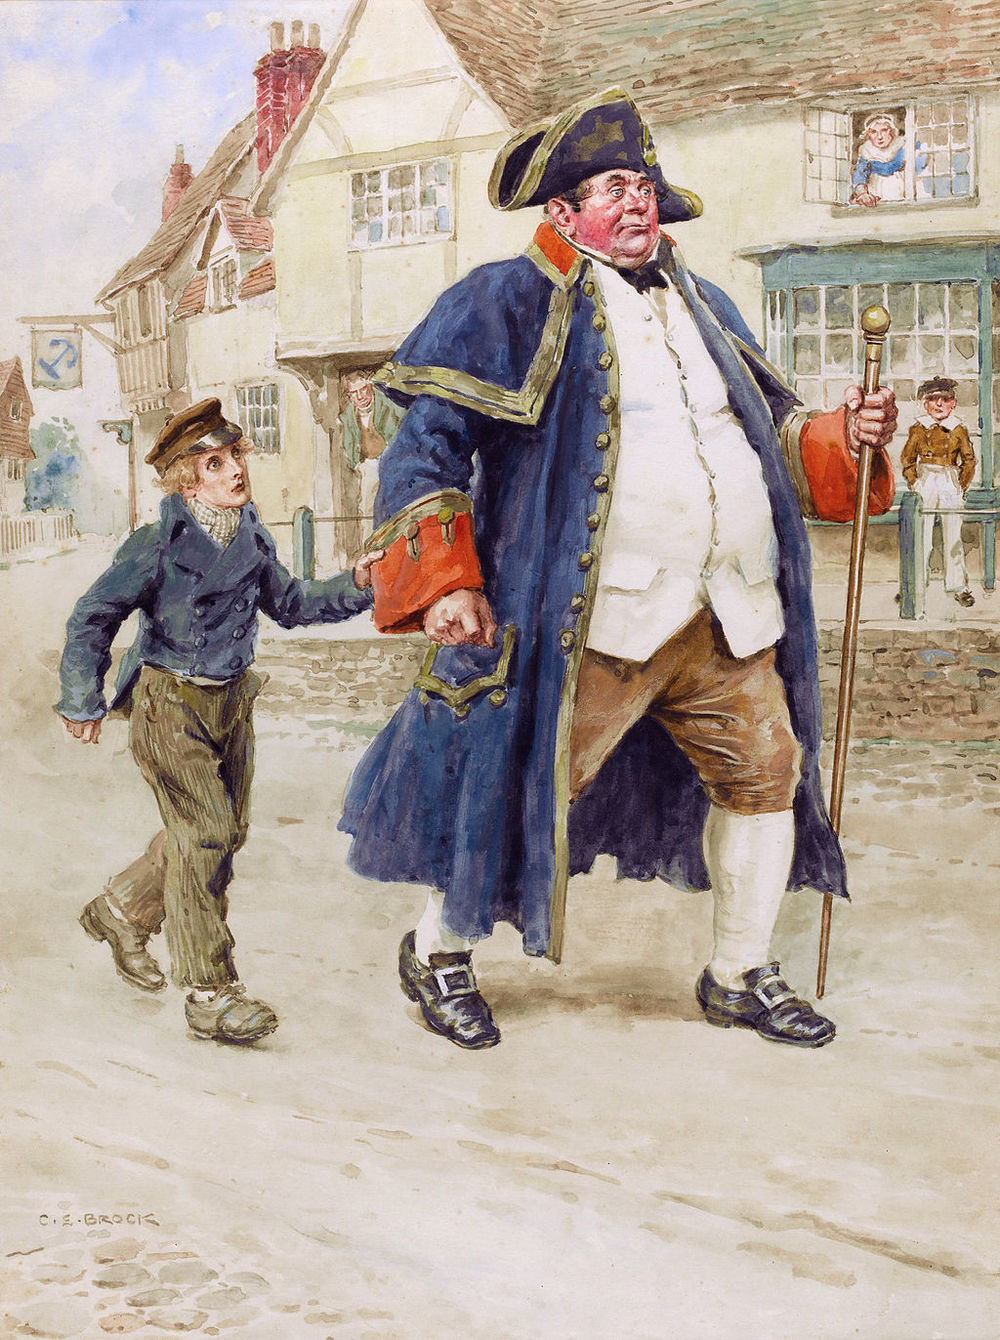 Mr Bumble, the beadle from the workhouse, leading Oliver Twist. The painting is based on the book  Oliver Twist  by Charles Dickens.